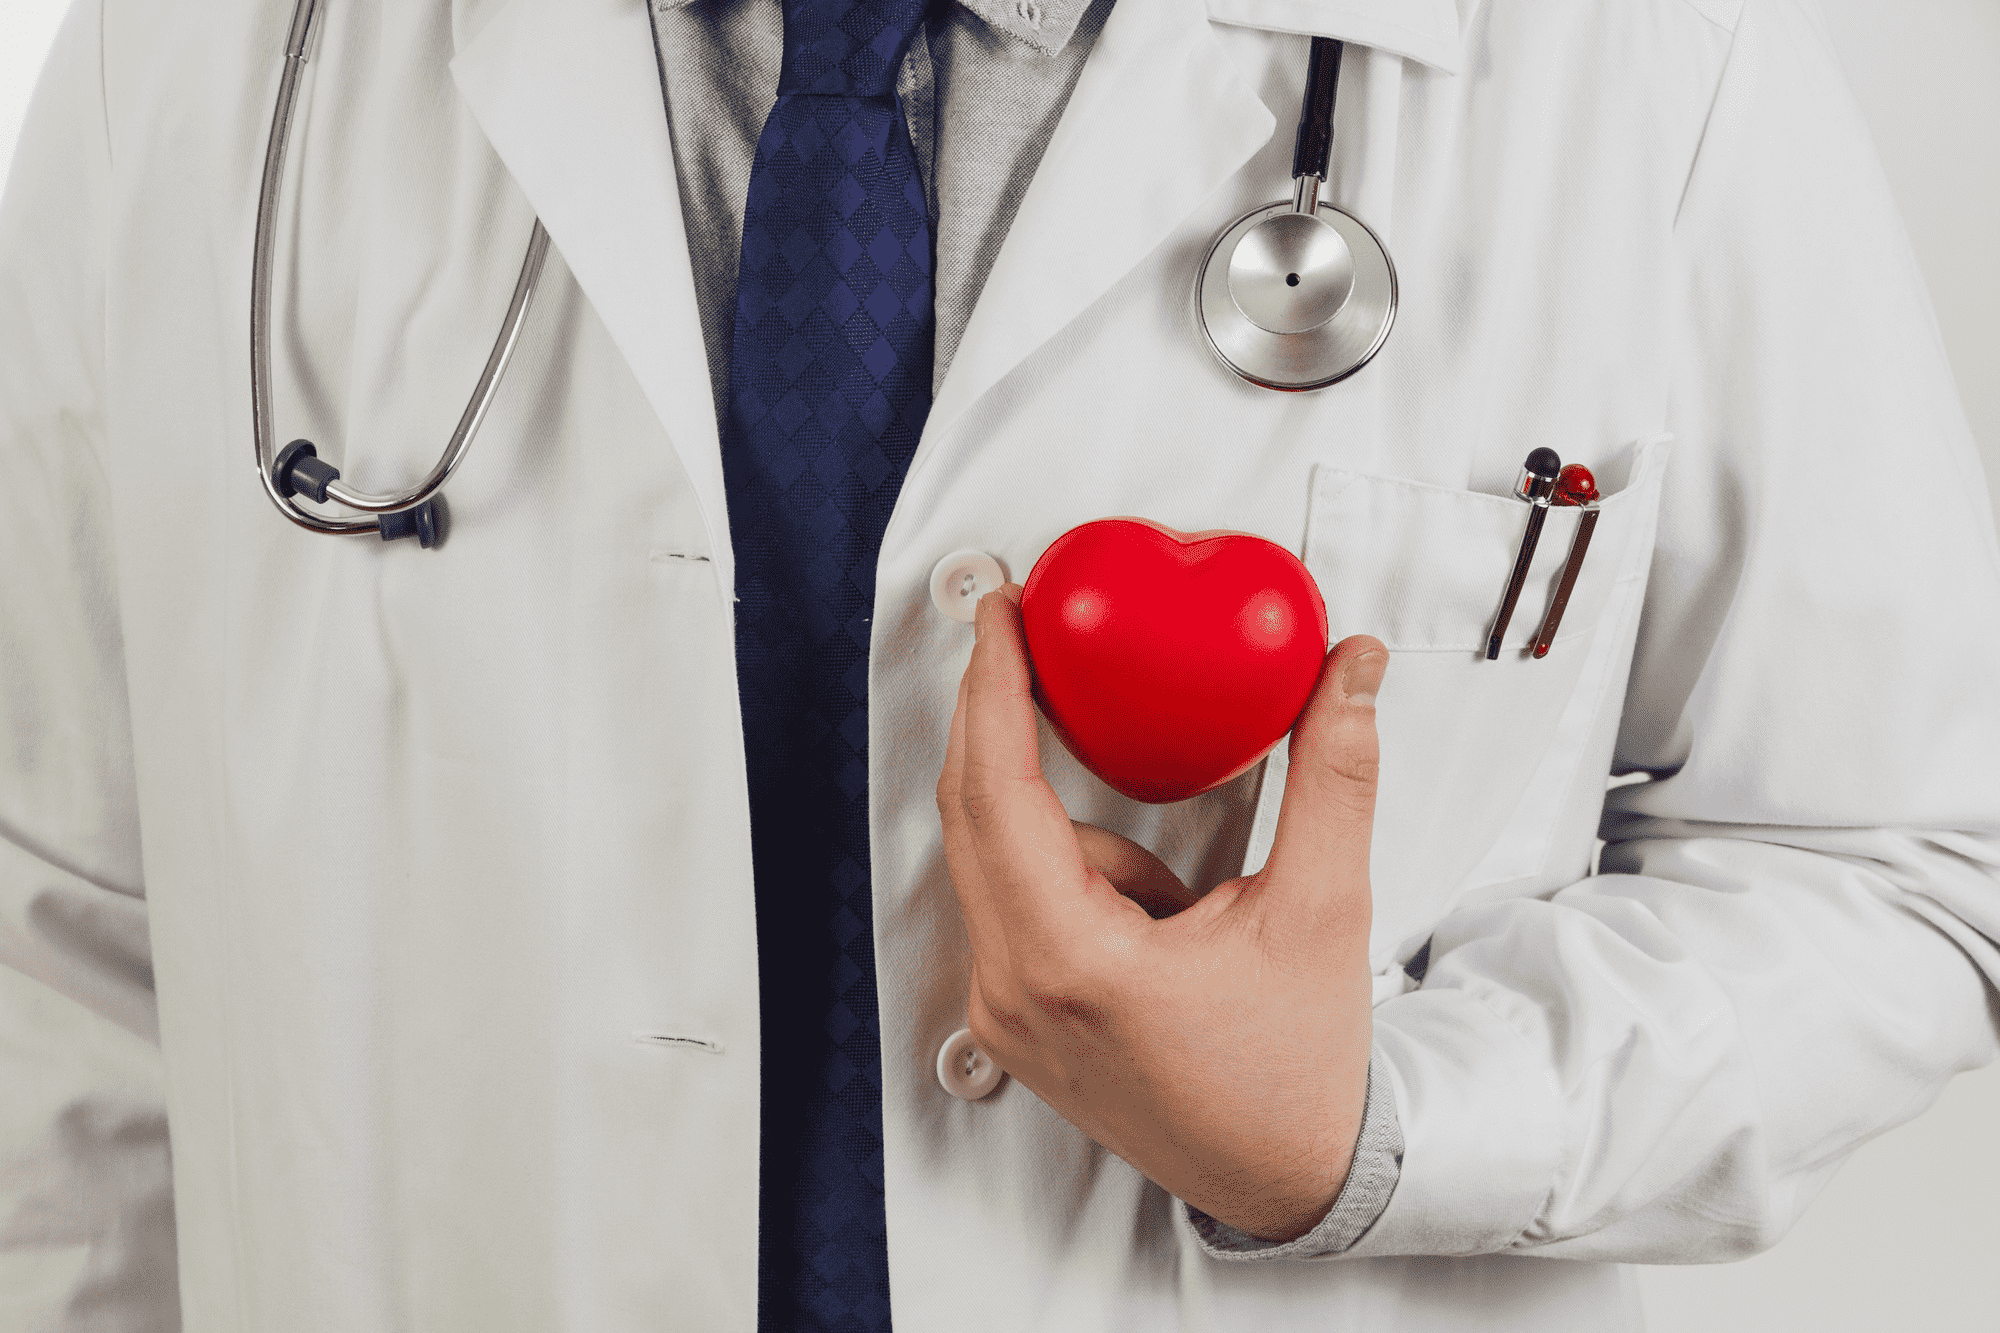 doctor holding a heart object